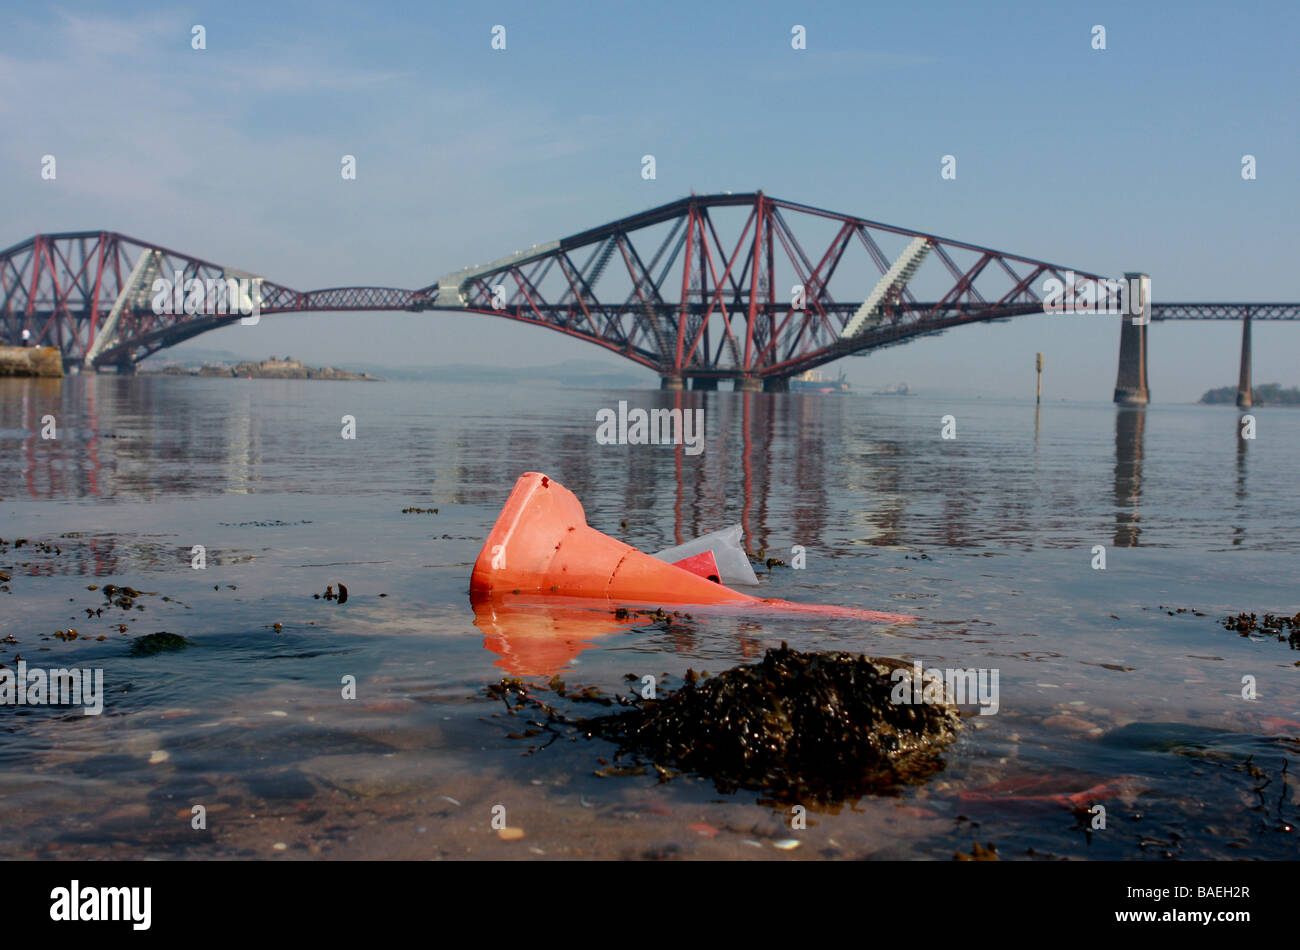 Forth Rail bridge traffic cone in river, pollution river - Stock Image